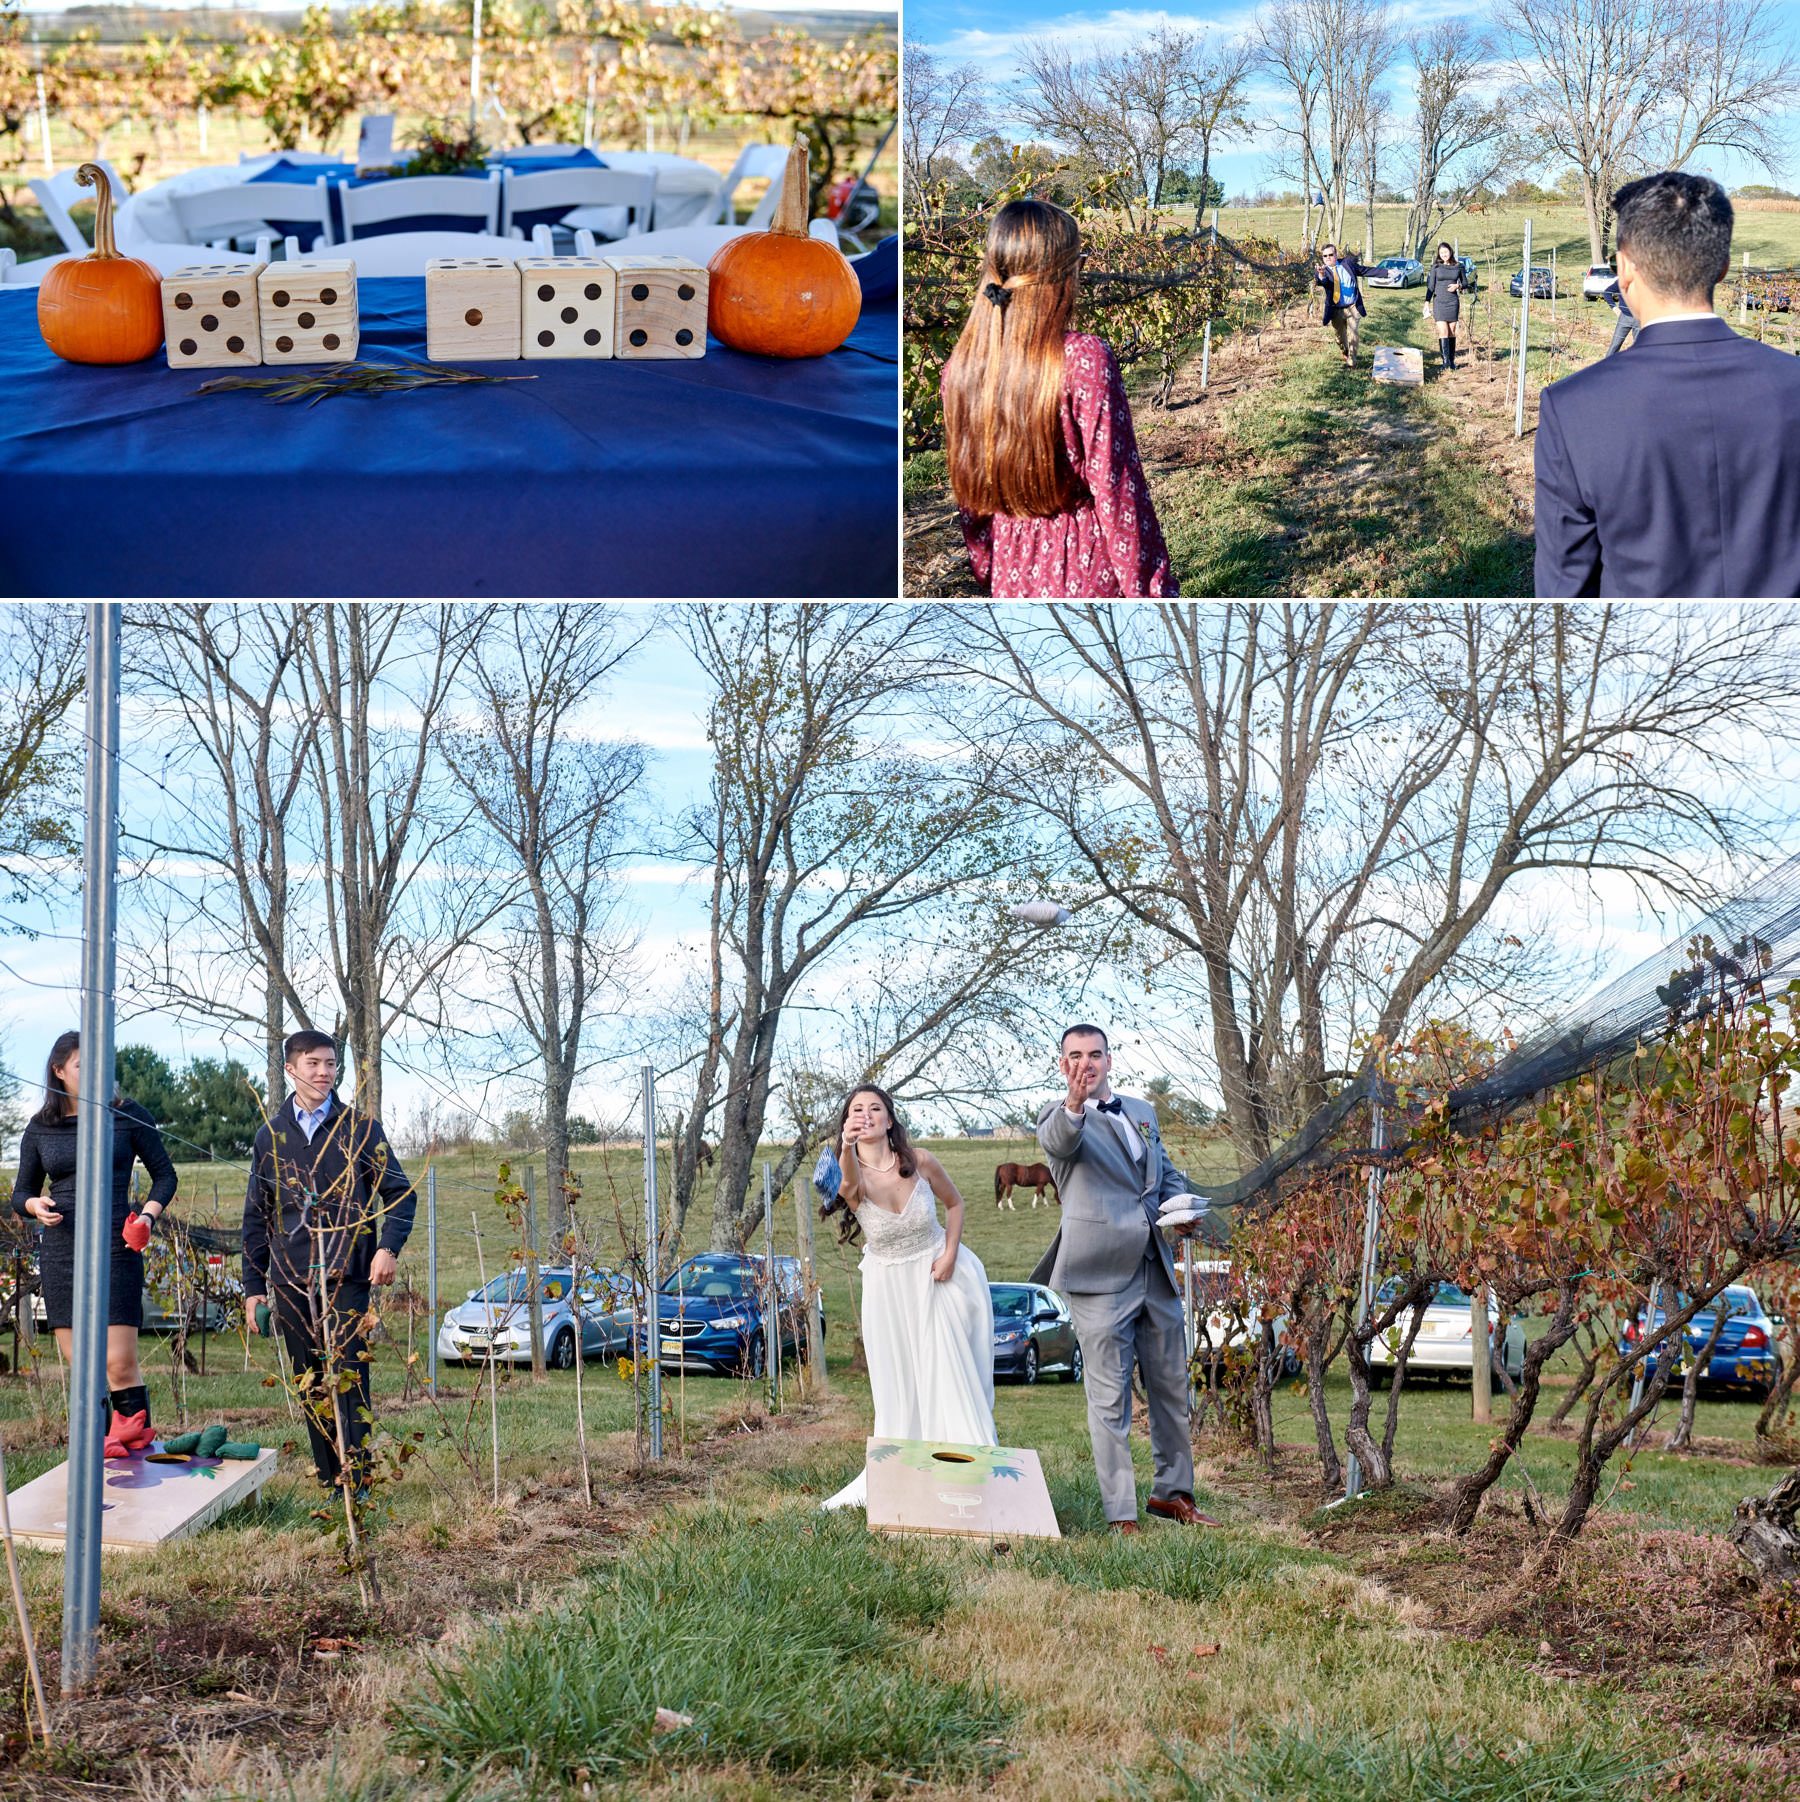 wedding yard games photos